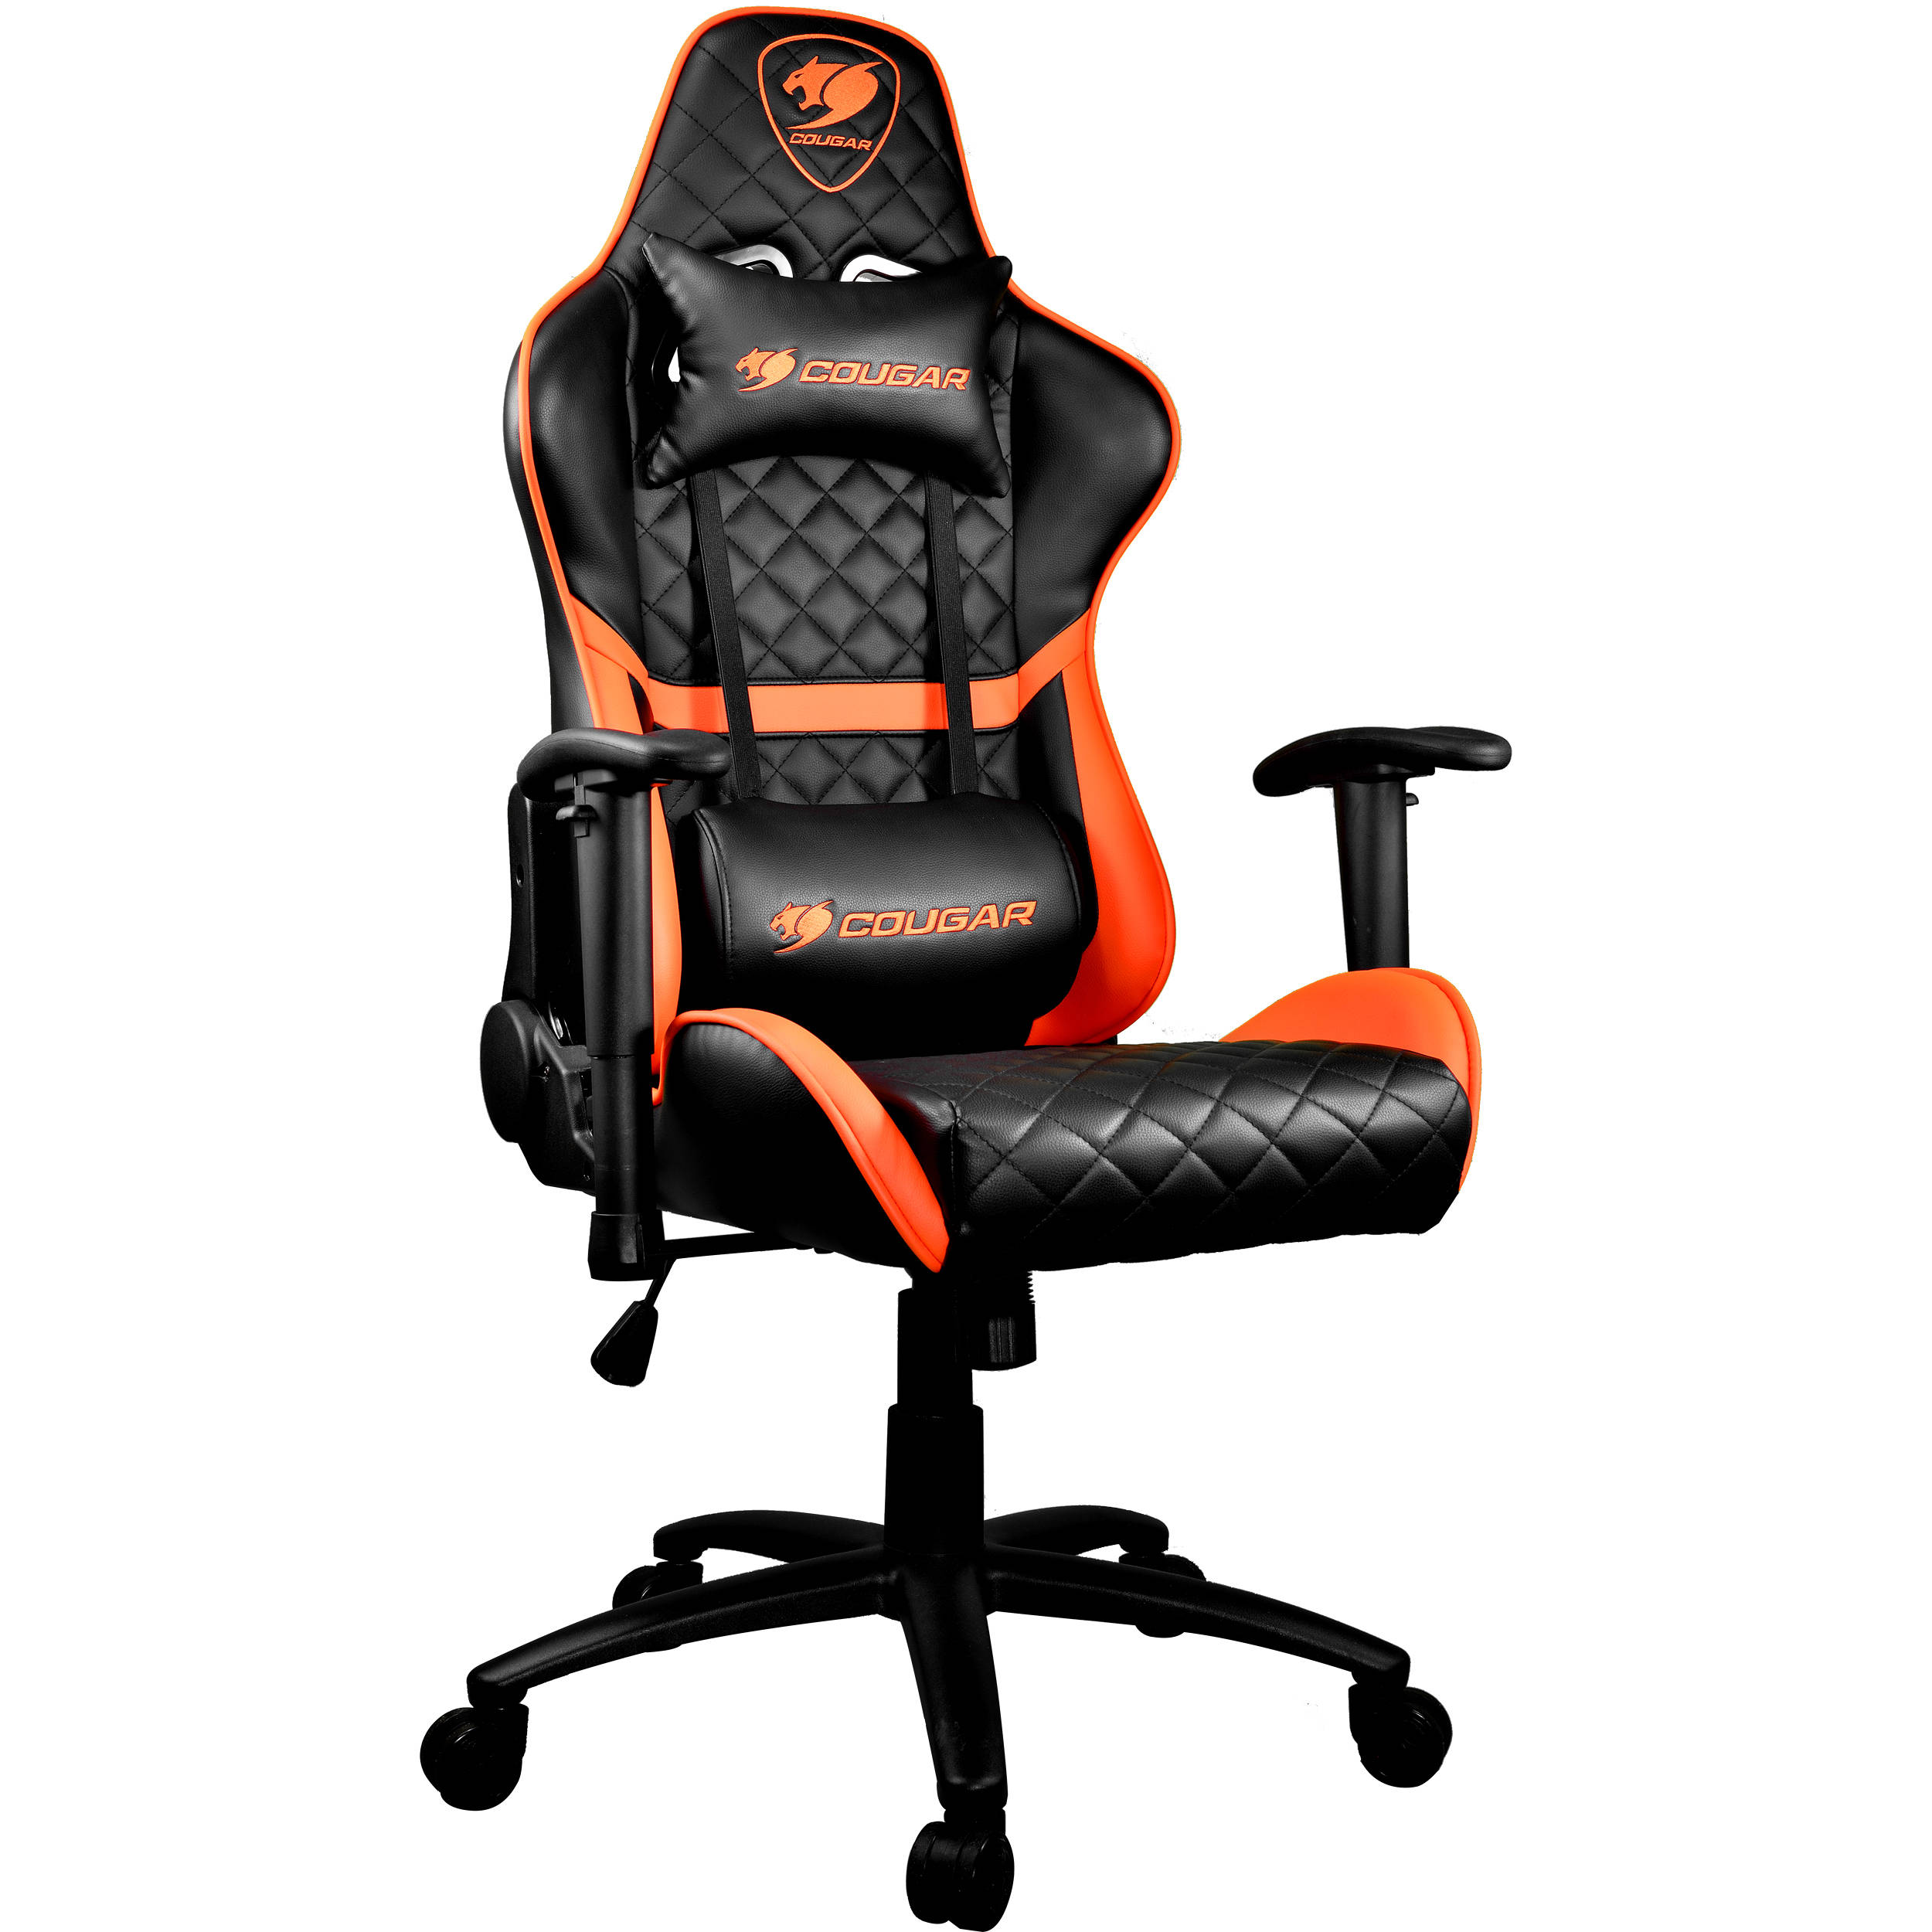 Astonishing Cougar Armor One Gaming Chair Black And Orange Andrewgaddart Wooden Chair Designs For Living Room Andrewgaddartcom